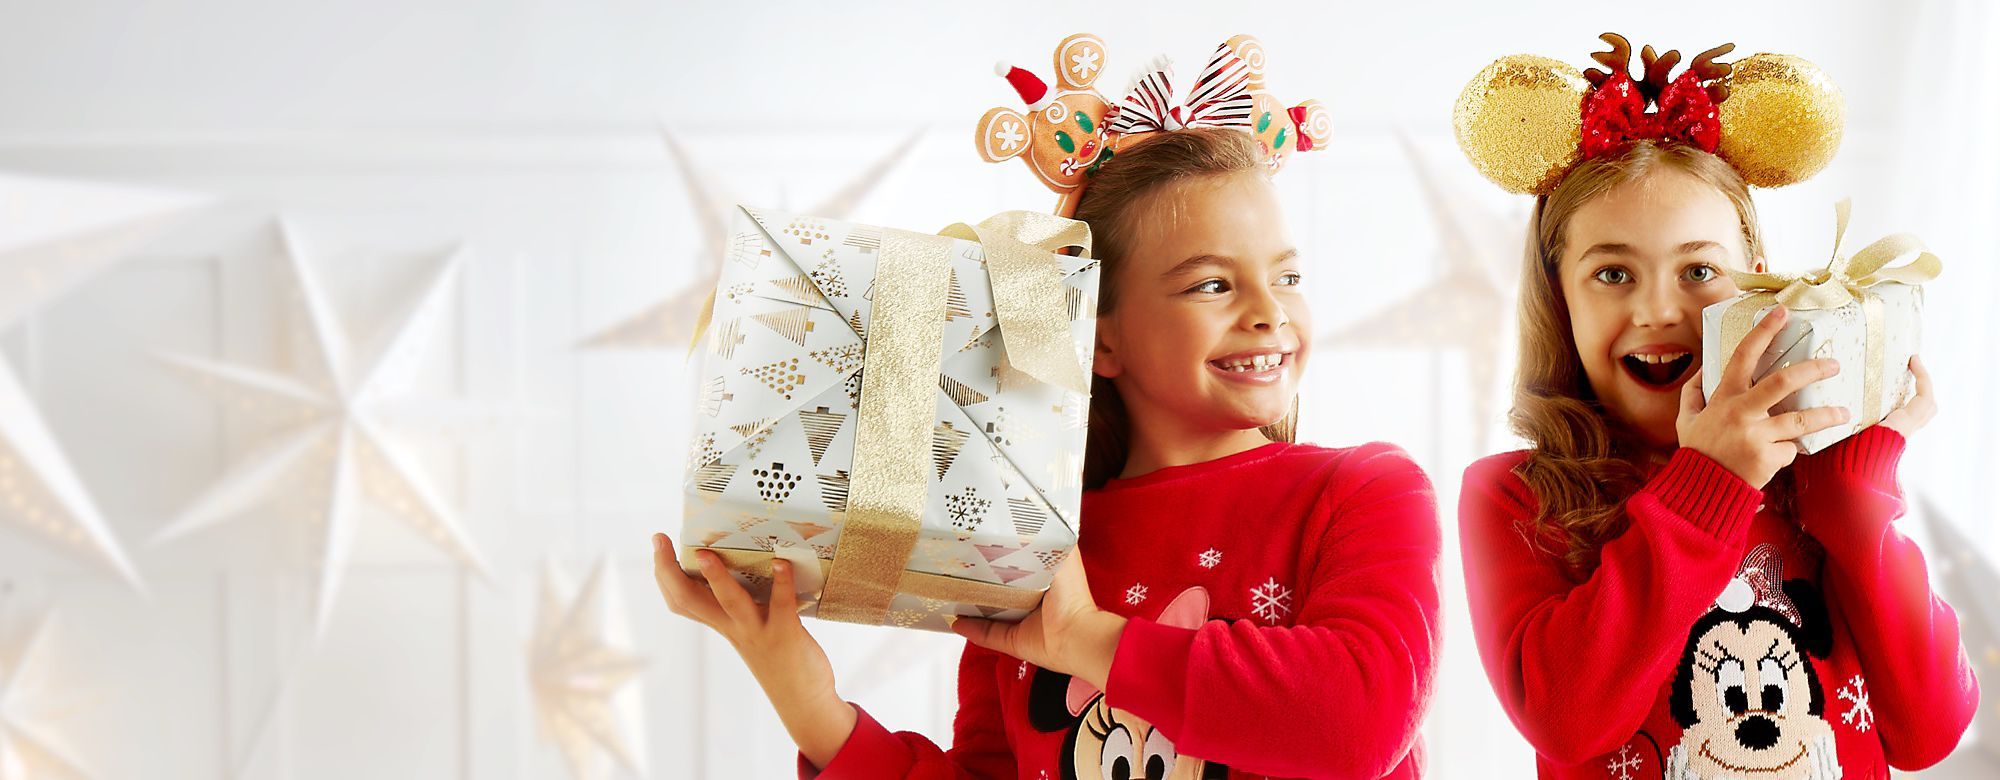 Gift Finder Finding the perfect gift for that special person